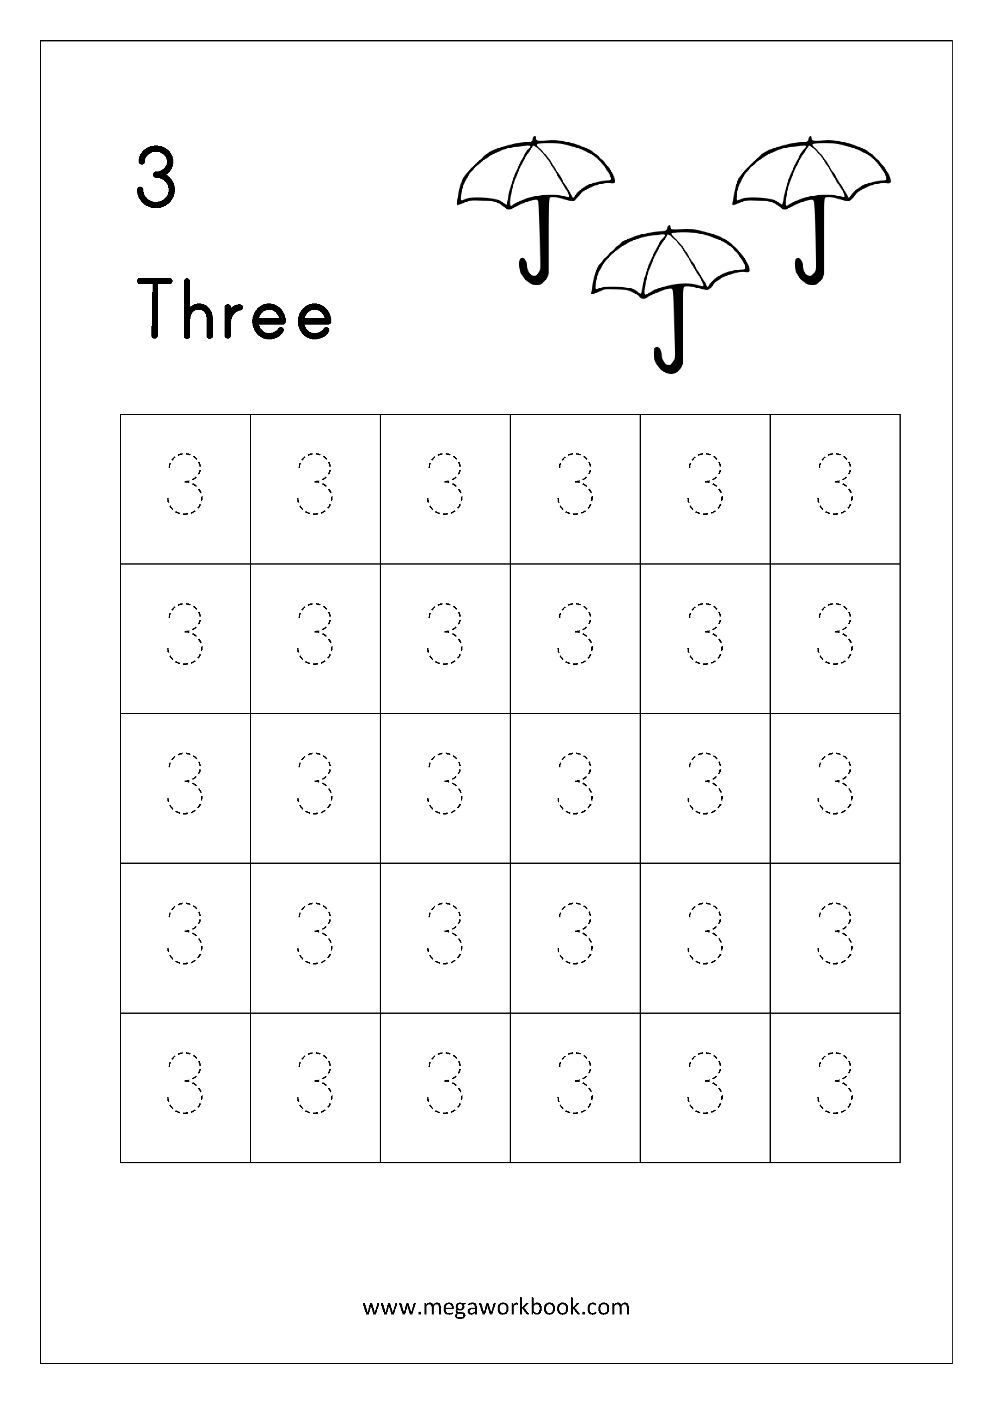 Free Printable Number Tracing And Writing 110 Worksheets  Number Or Number Handwriting Worksheets